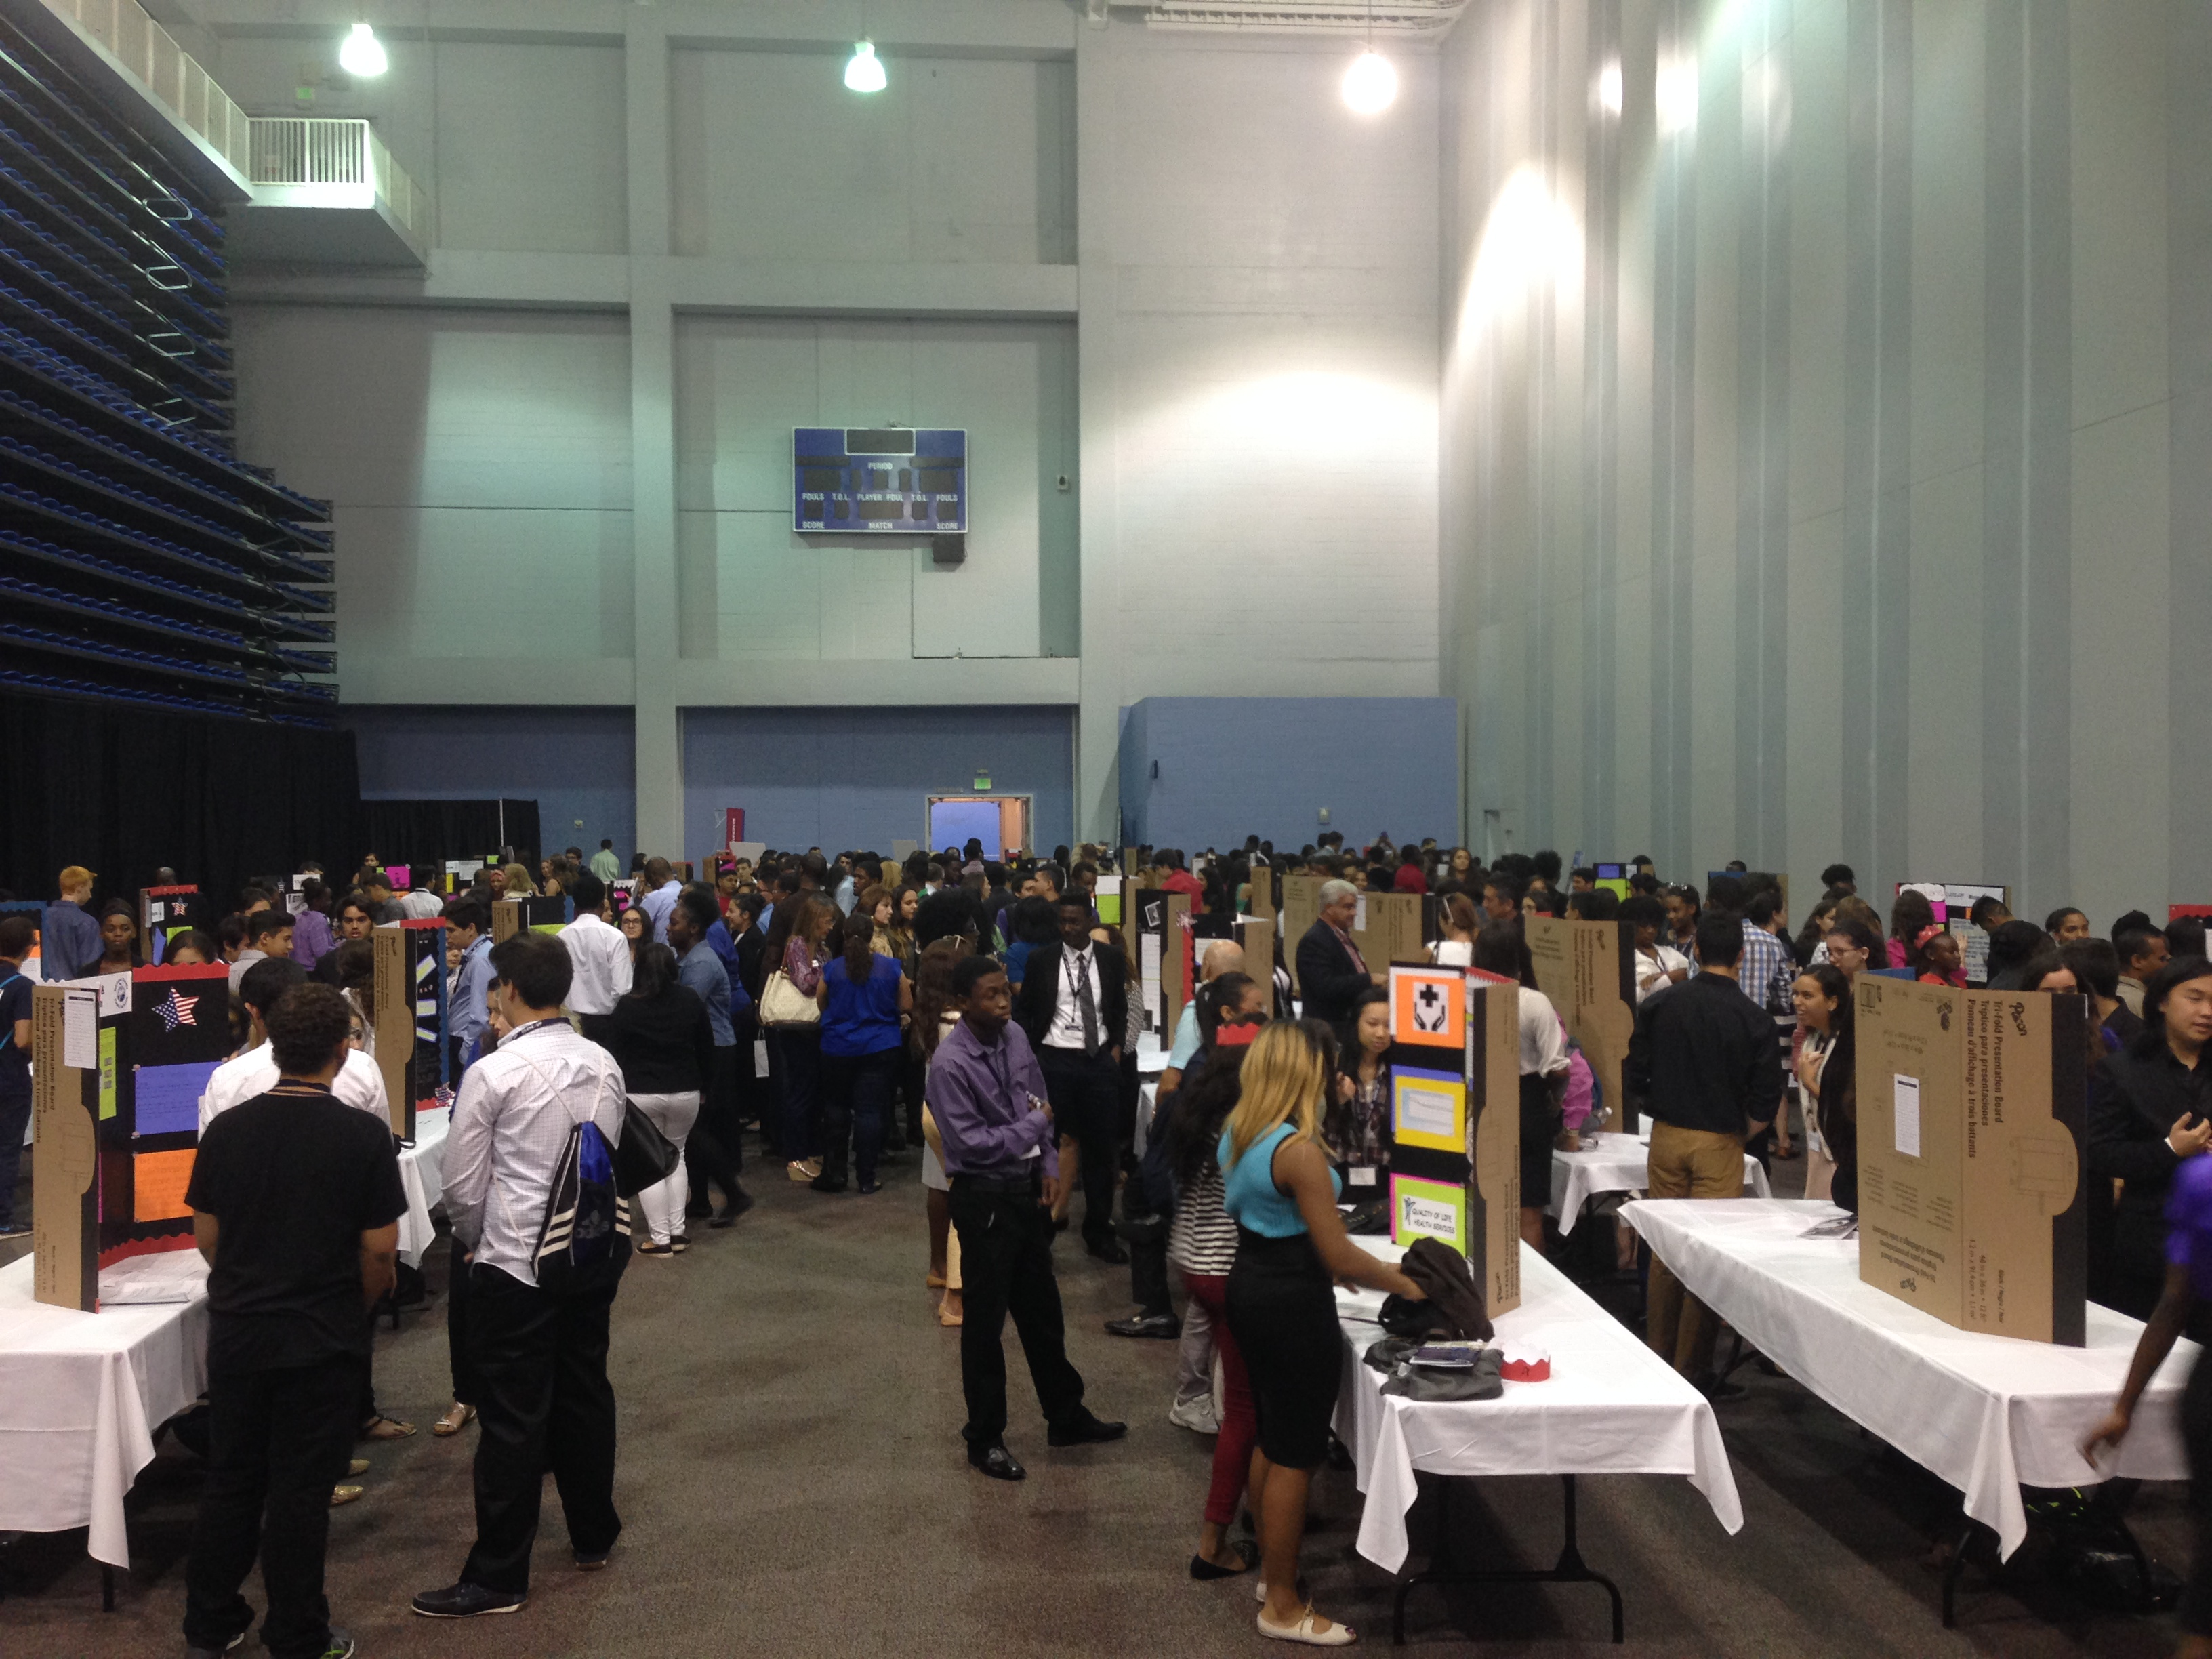 Over 200 fresh young immigrants share policy proposals with the state and Broward community